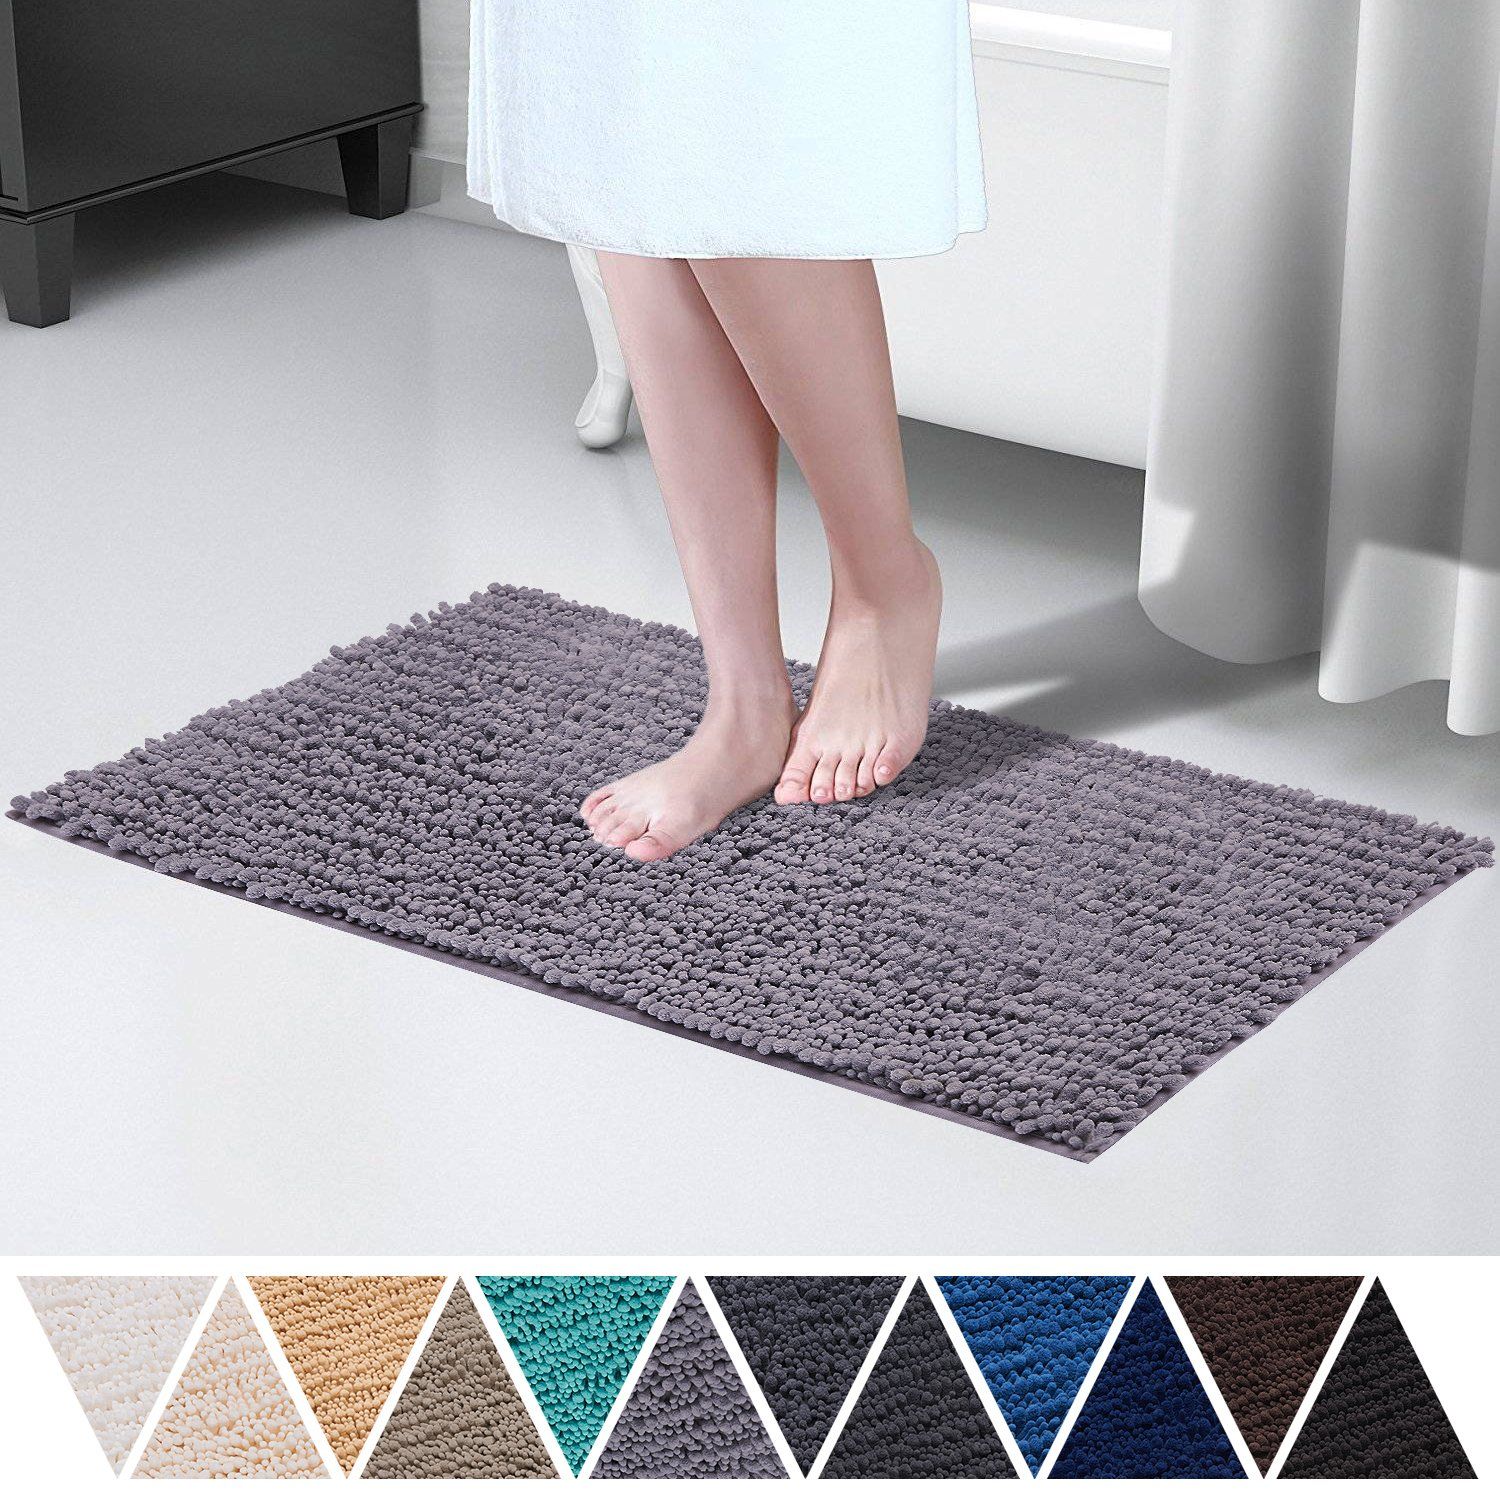 "Plush Rug for Indoor, Microfiber Anti Slip Mat|Great for Bathroom, Kitchen, Living Room|Modern Design, Tricolor, Super Soft, Absorbent, Quick Dry, Mildew Resistant, Machine Washable|18"" x 27"", Black+Gray+White DEARTOWN"